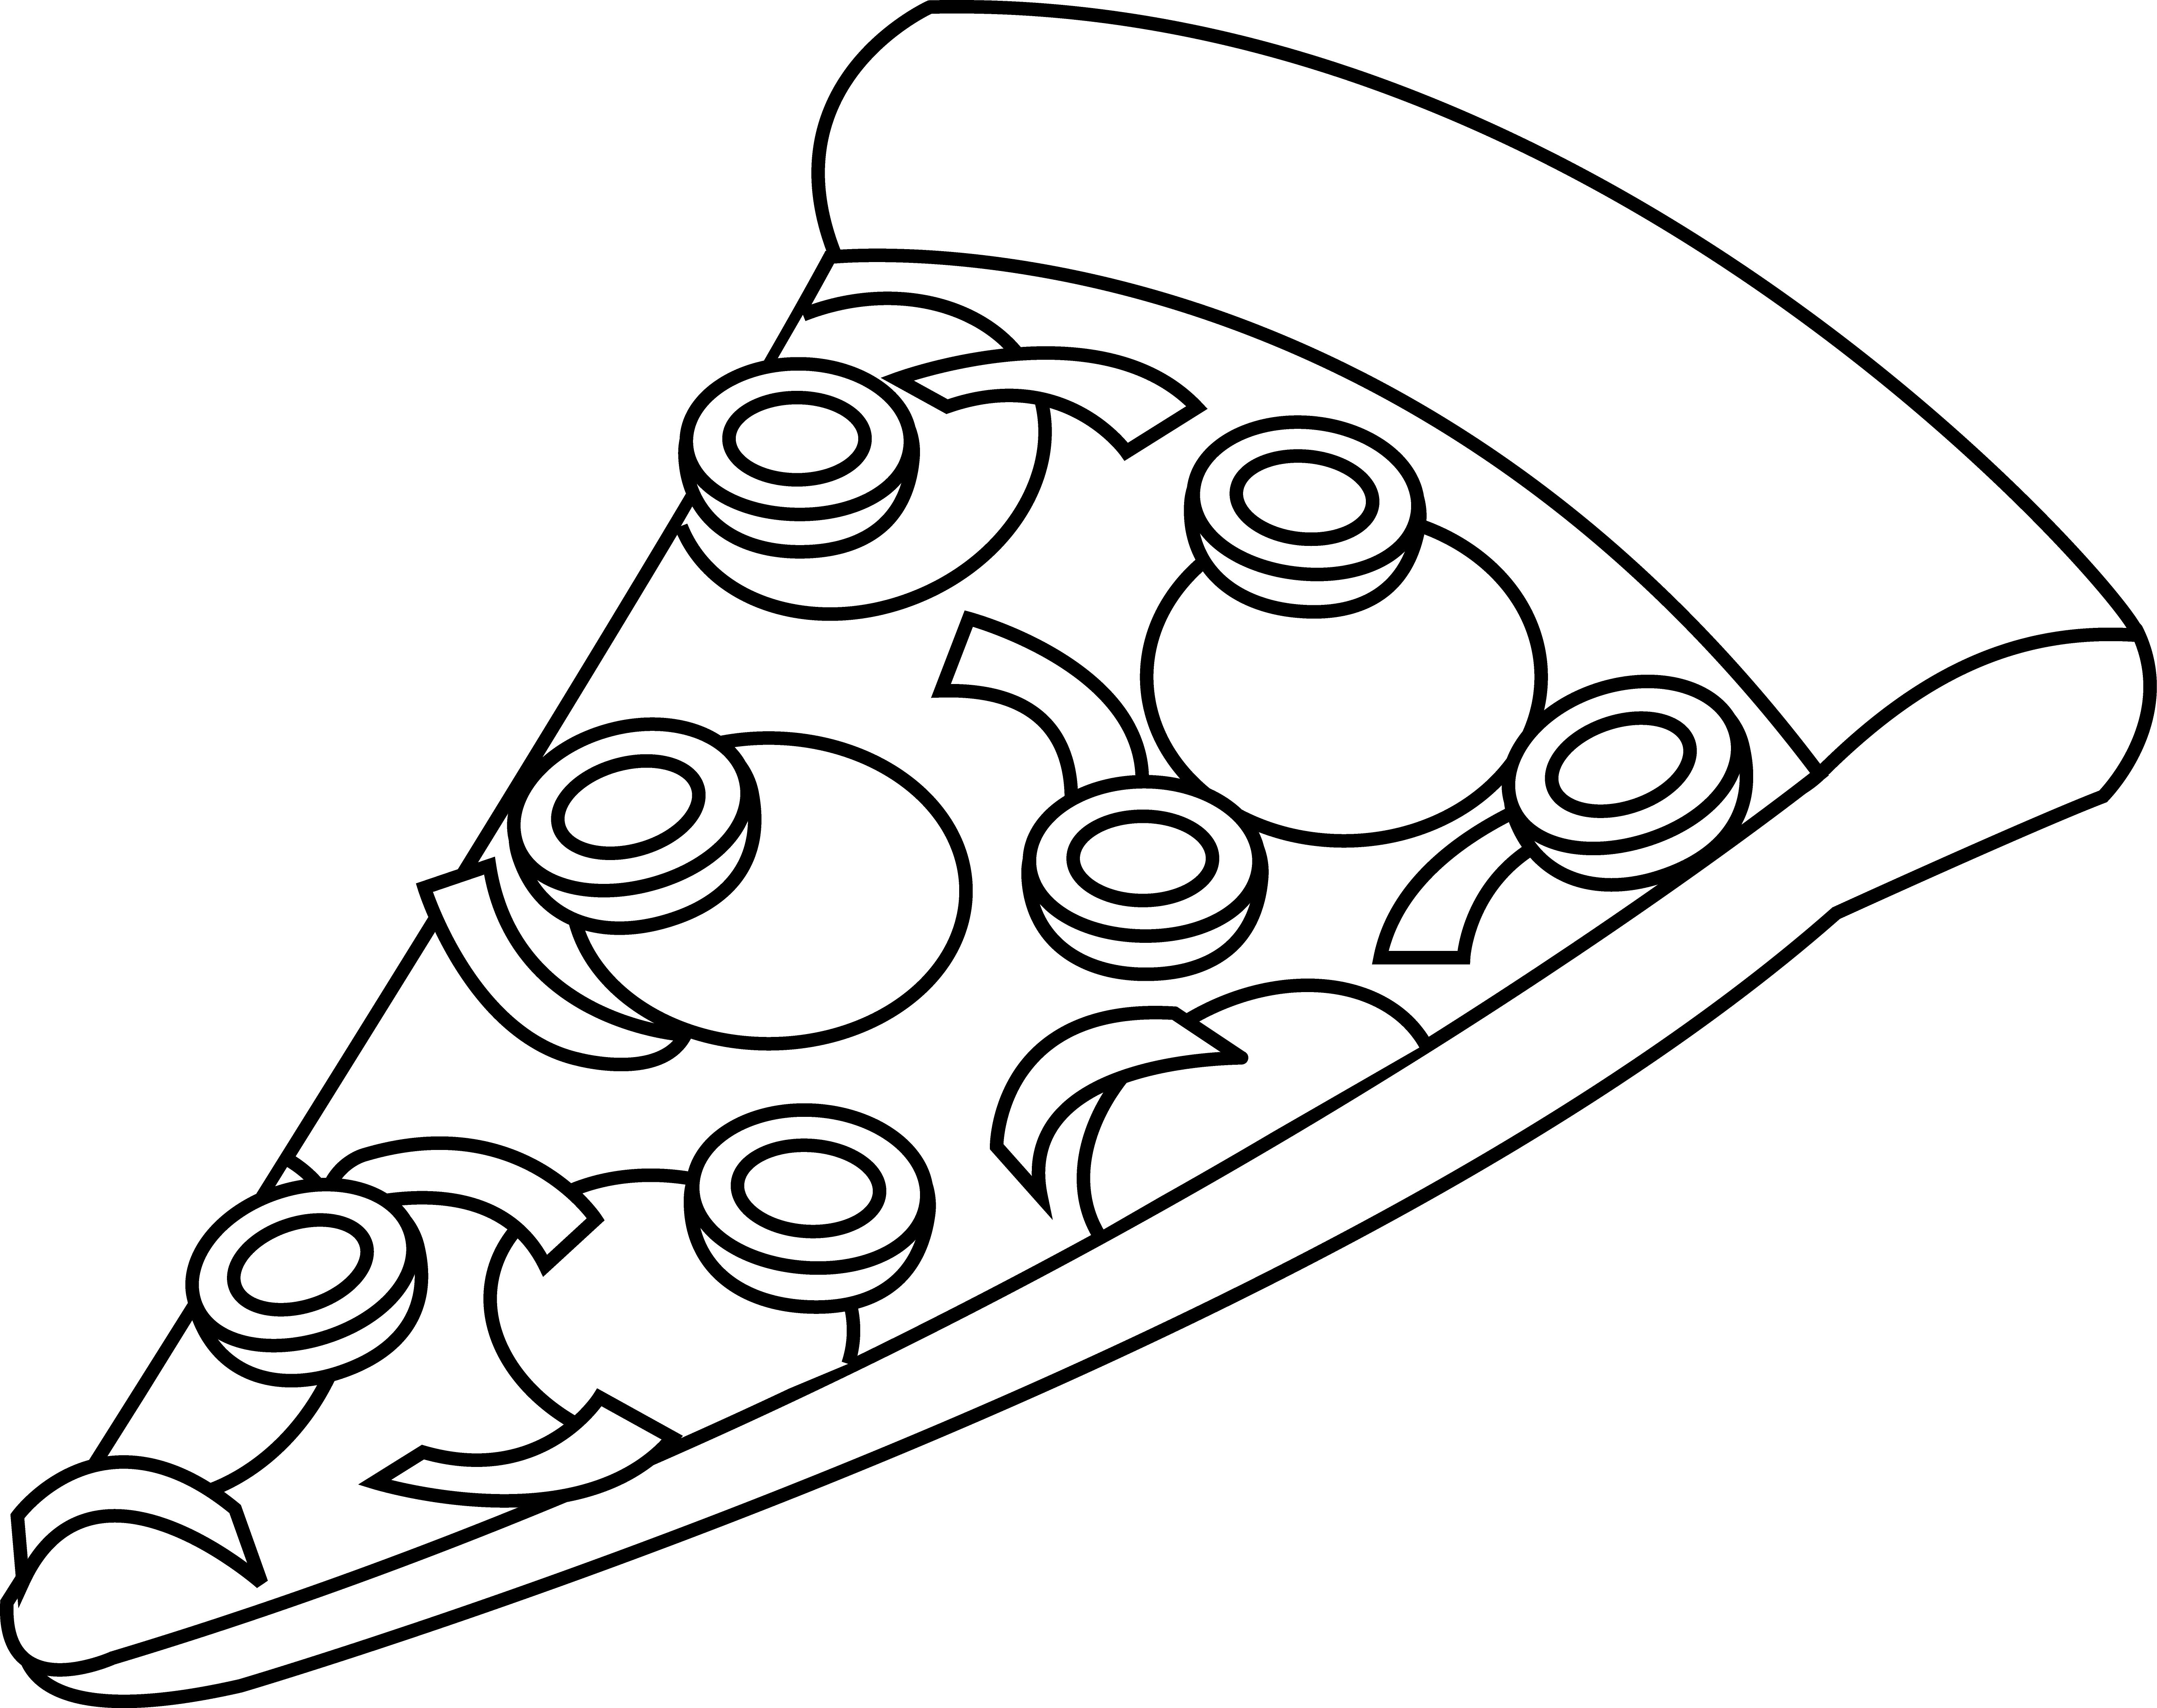 pepperoni%20pizza%20clipart%20black%20and%20white